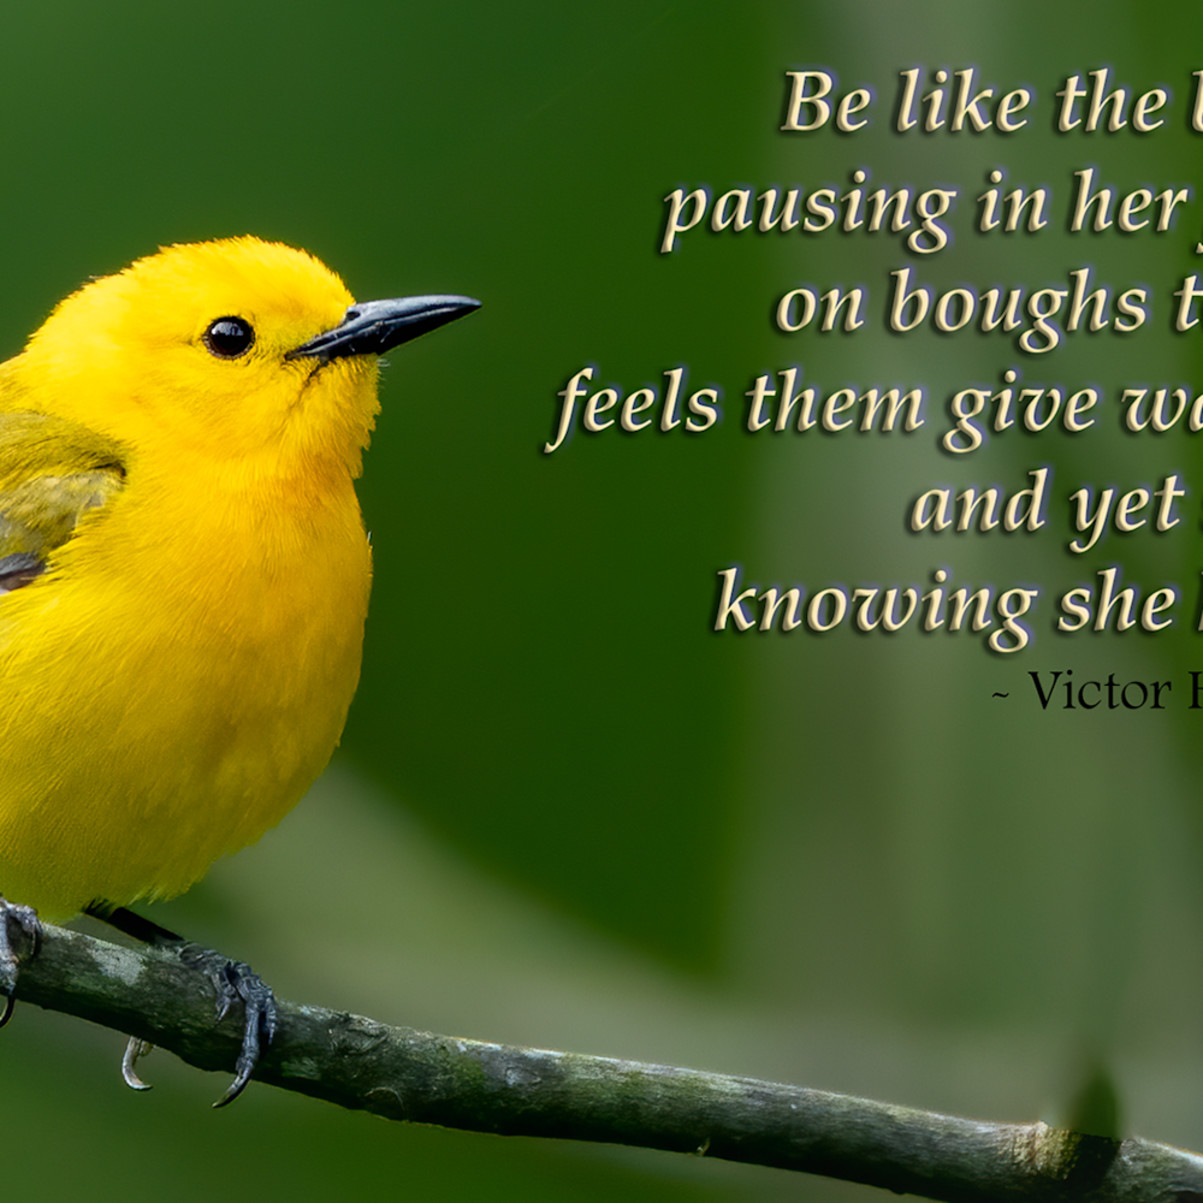 Be like the bird..knowing she hath wings 1 h5vm98